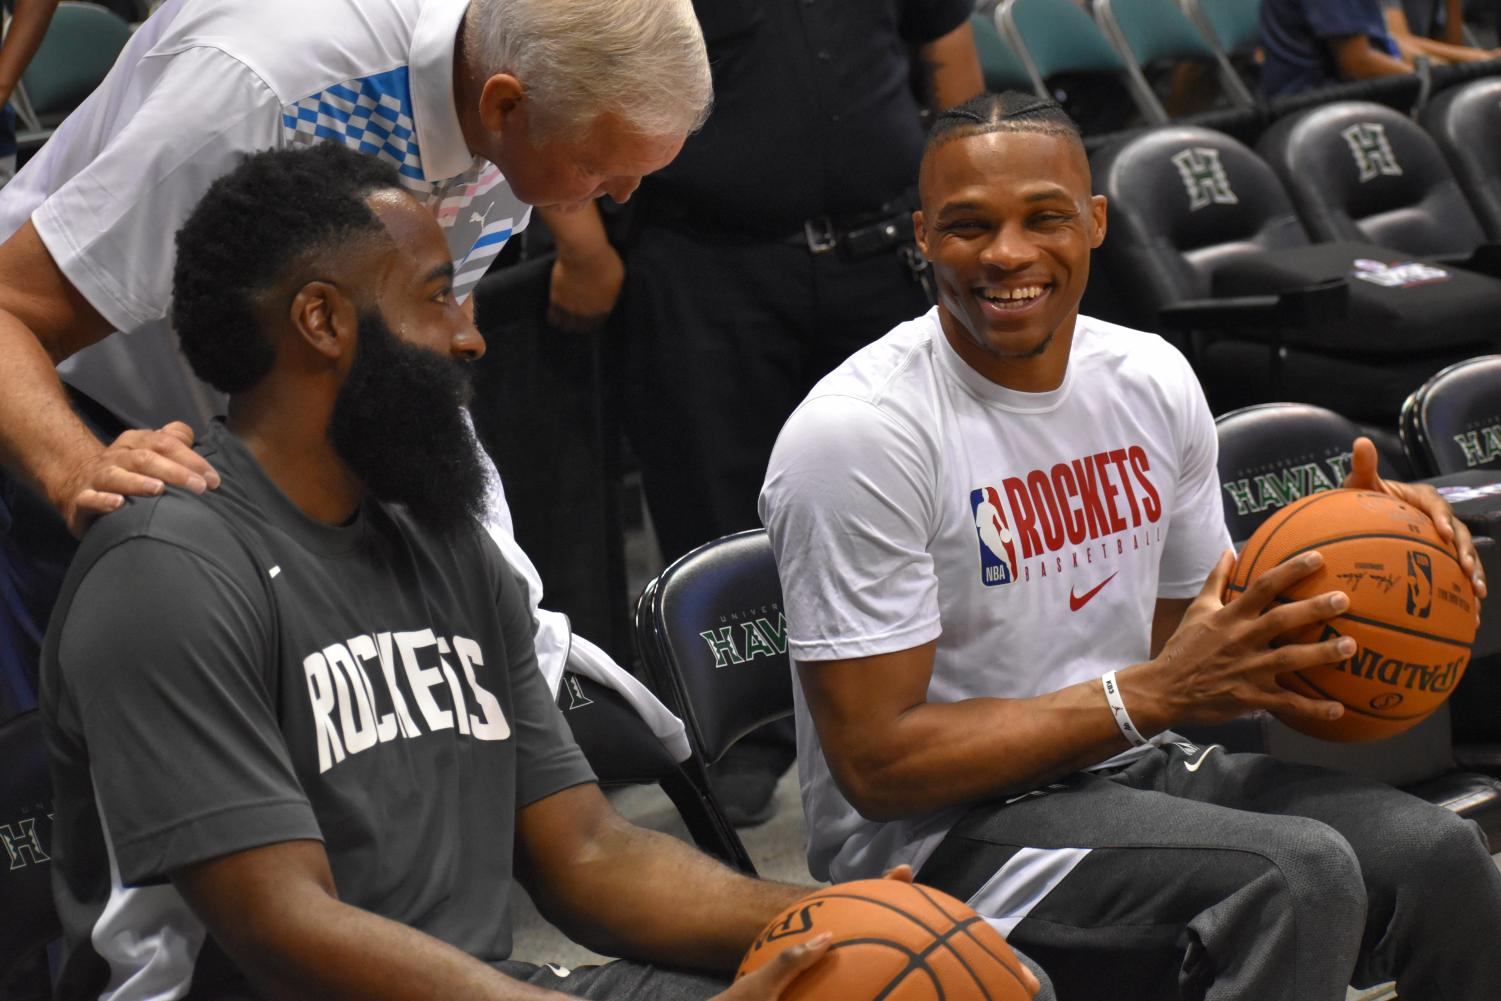 James Harden and Russell Westbrook before the game. Shot by Andre Arissol